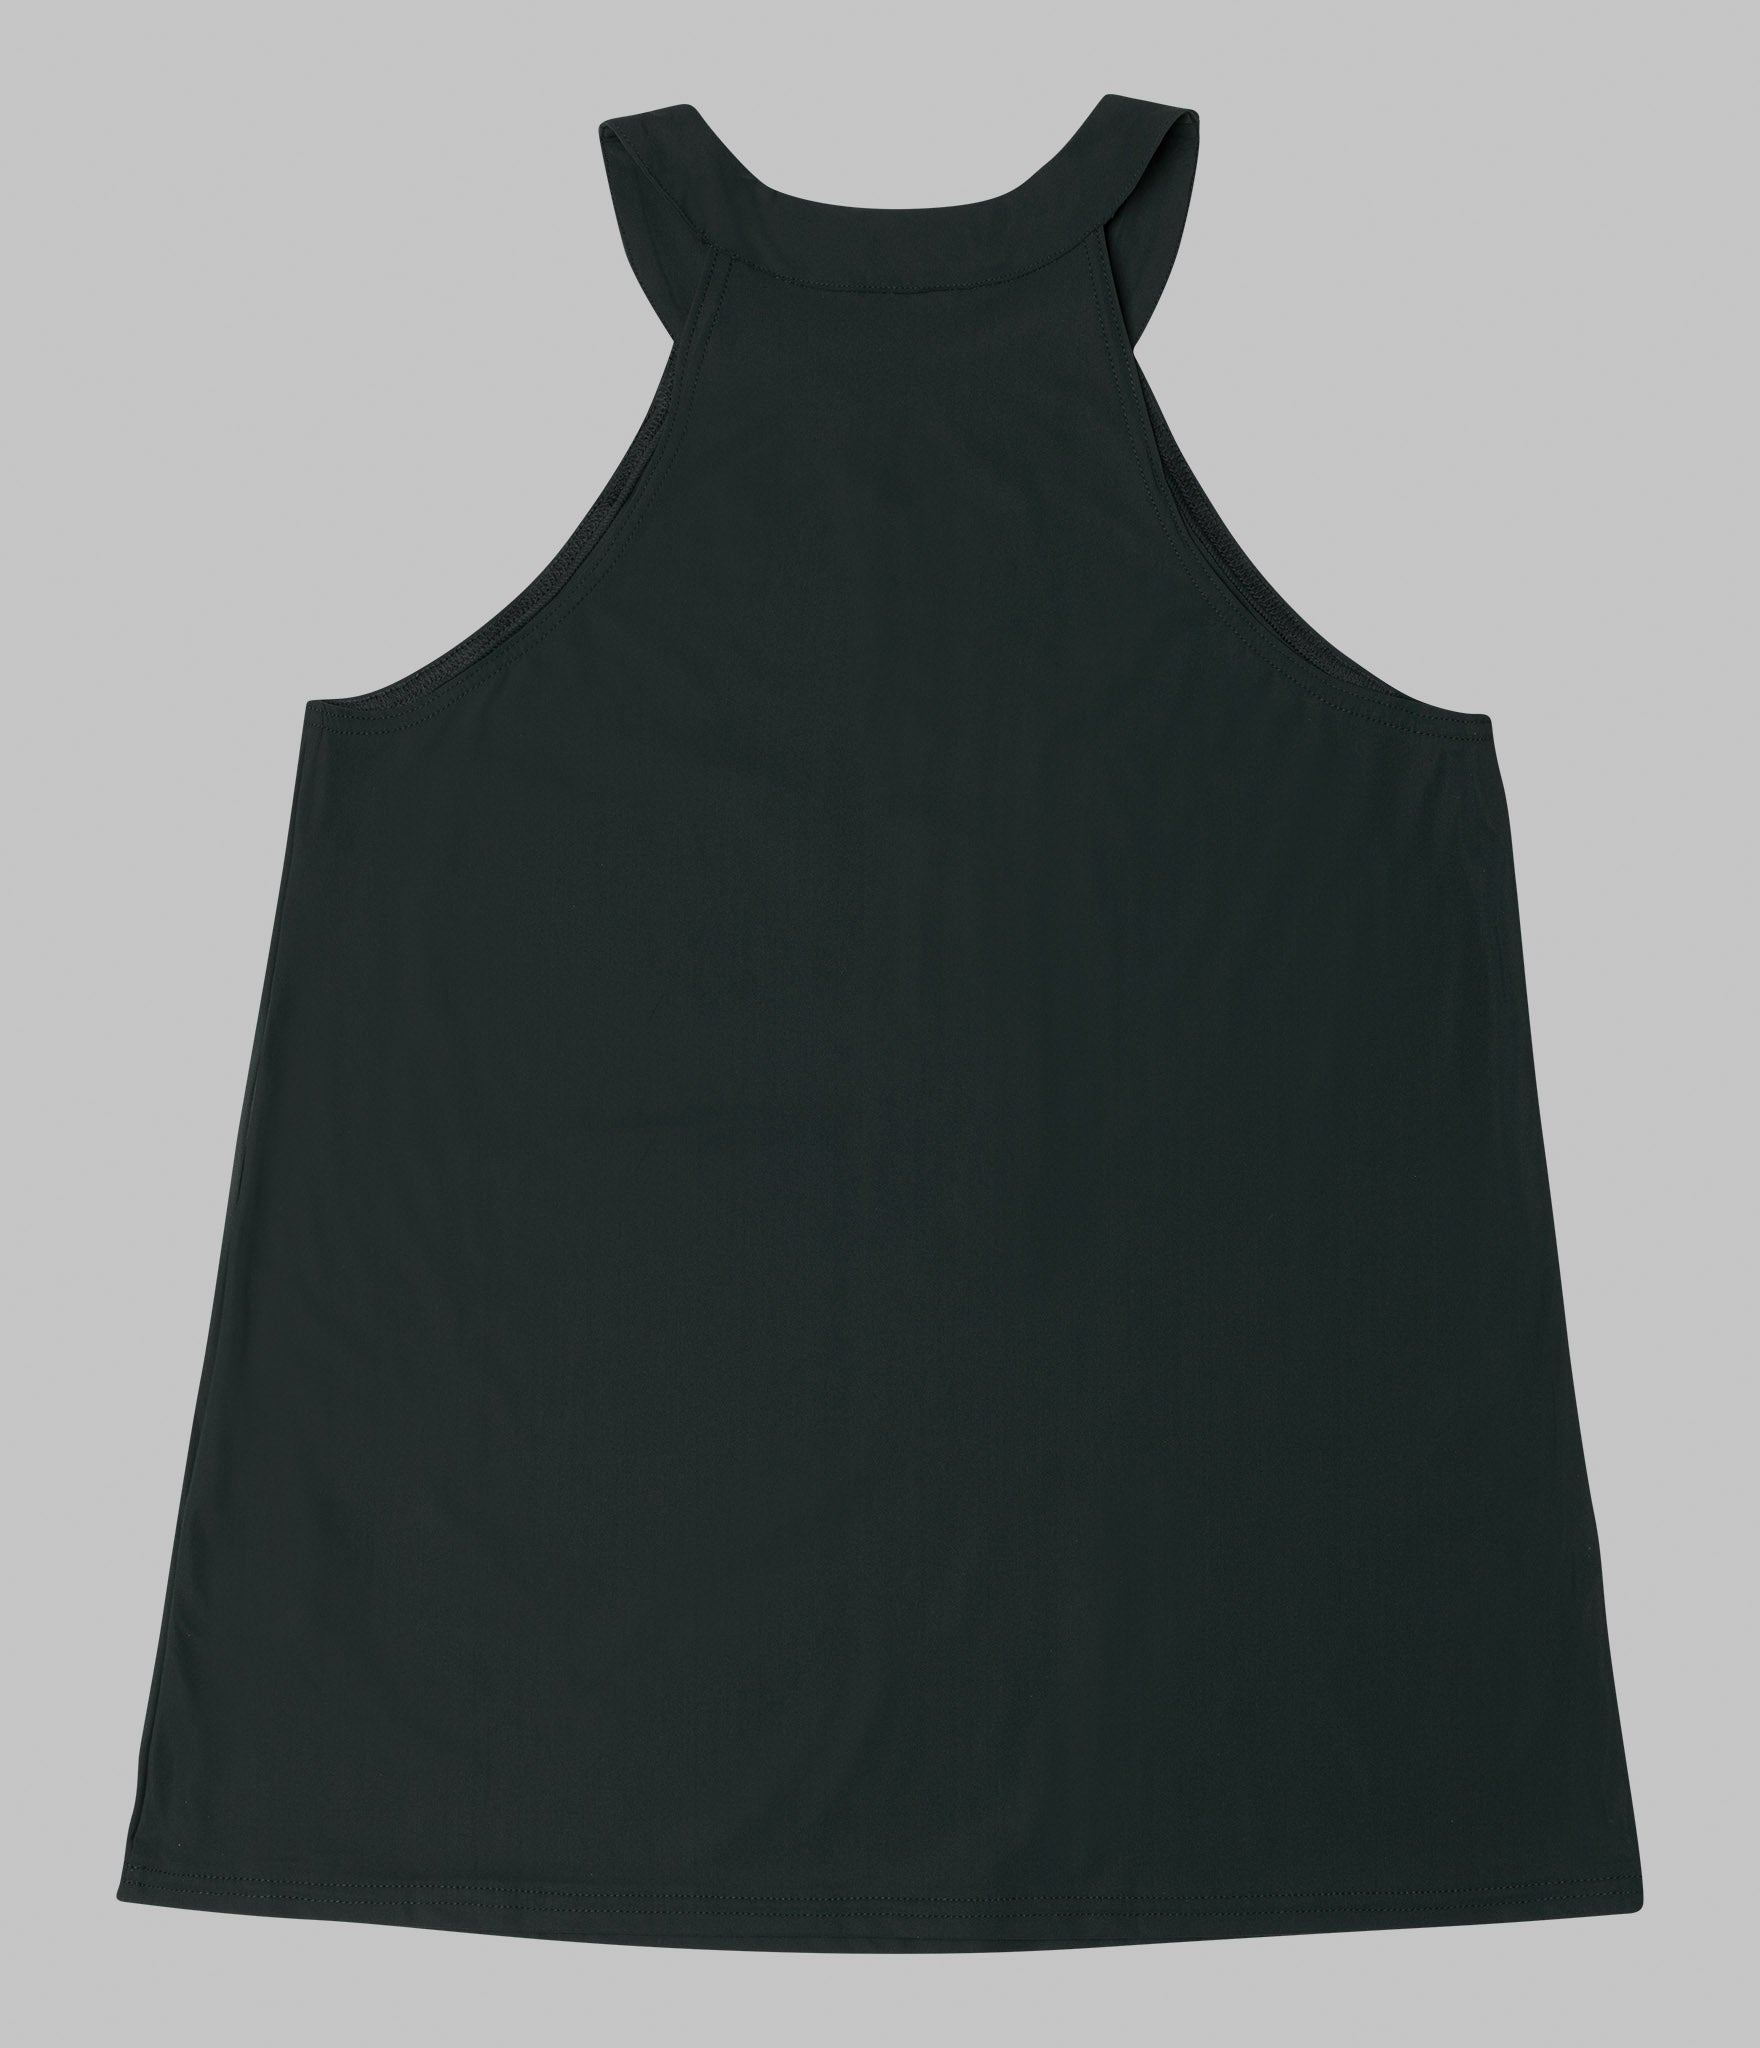 Newport Top</br>Dark KhakiGreen